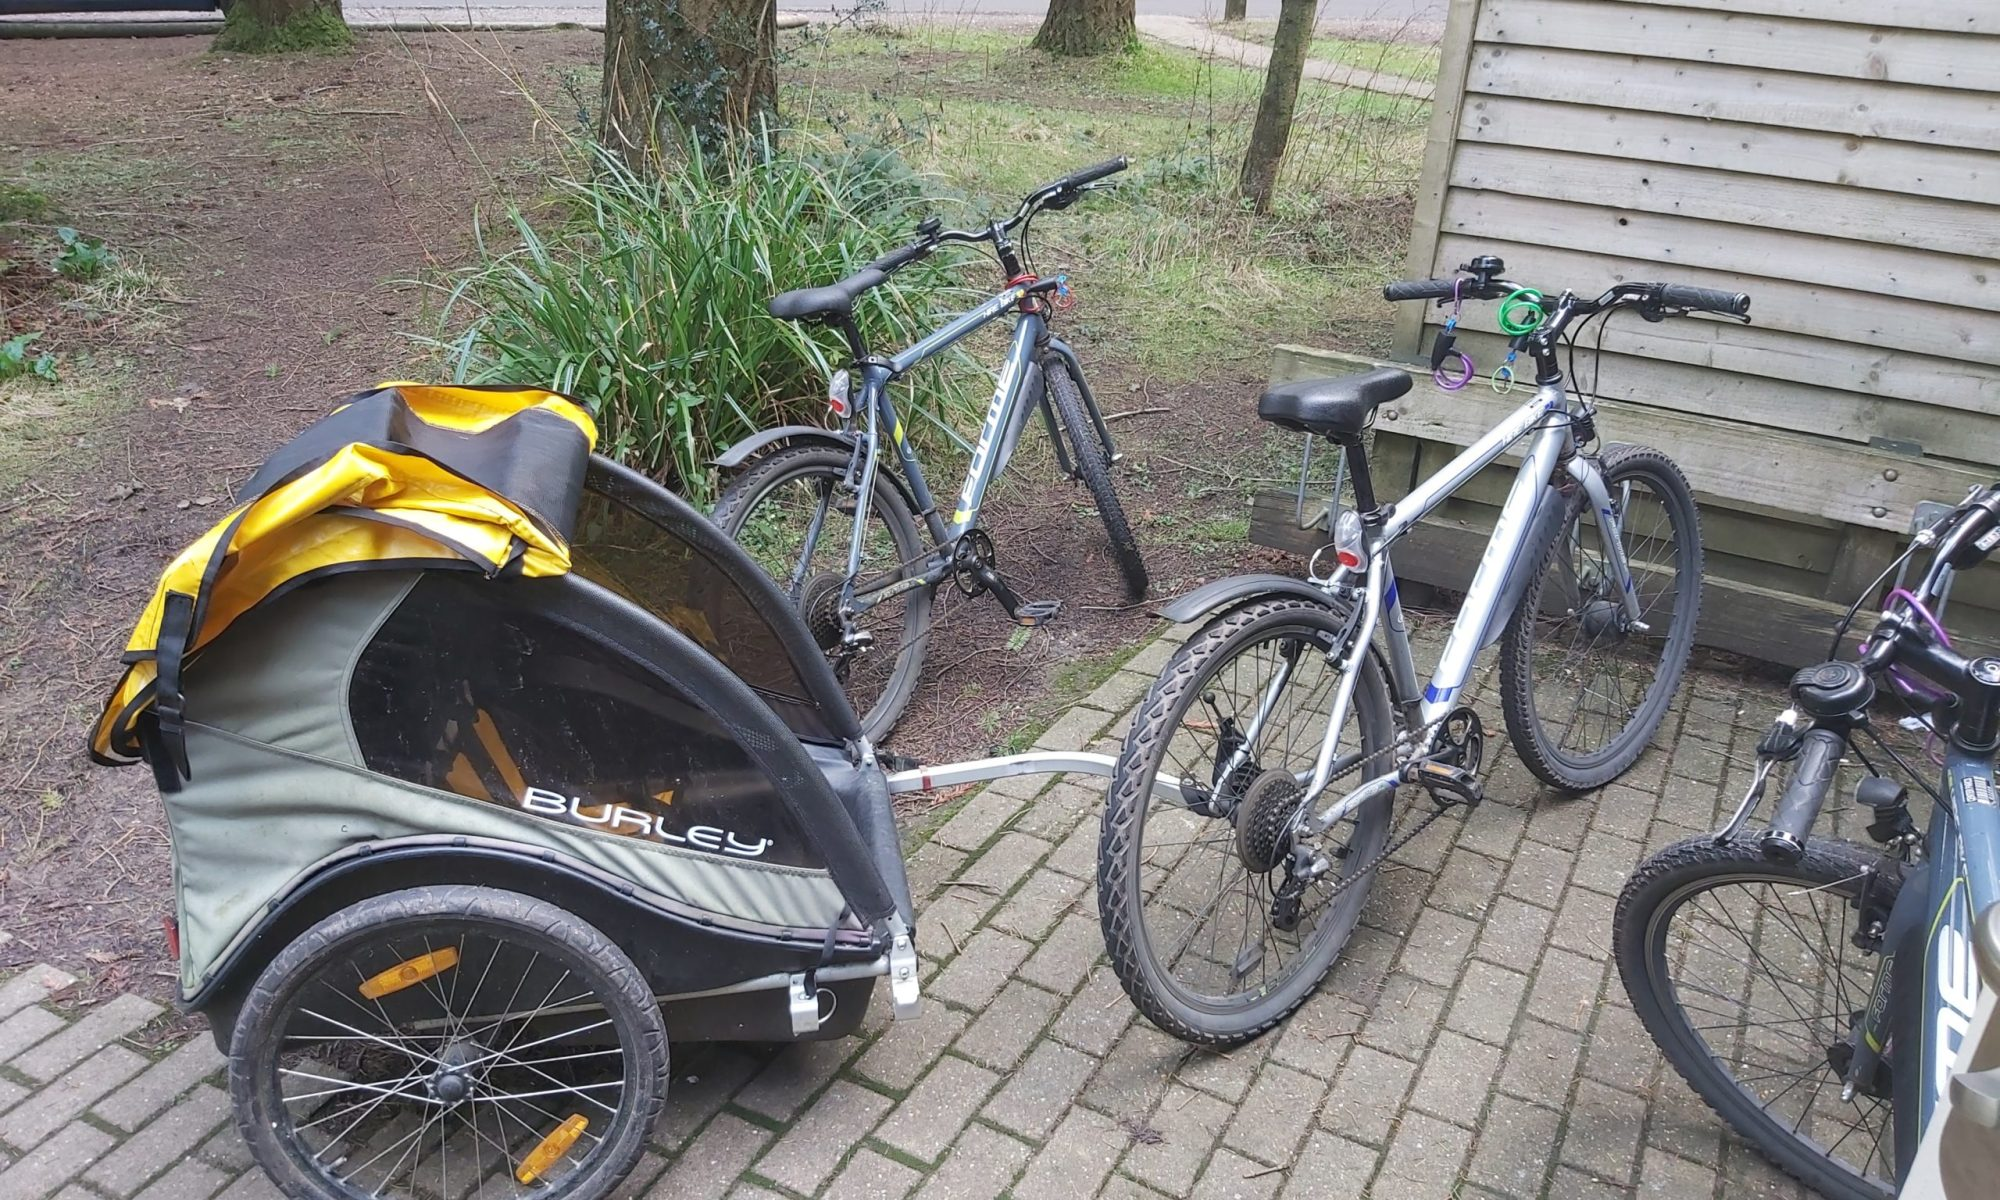 Bicycle hire Centerparcs Longleat